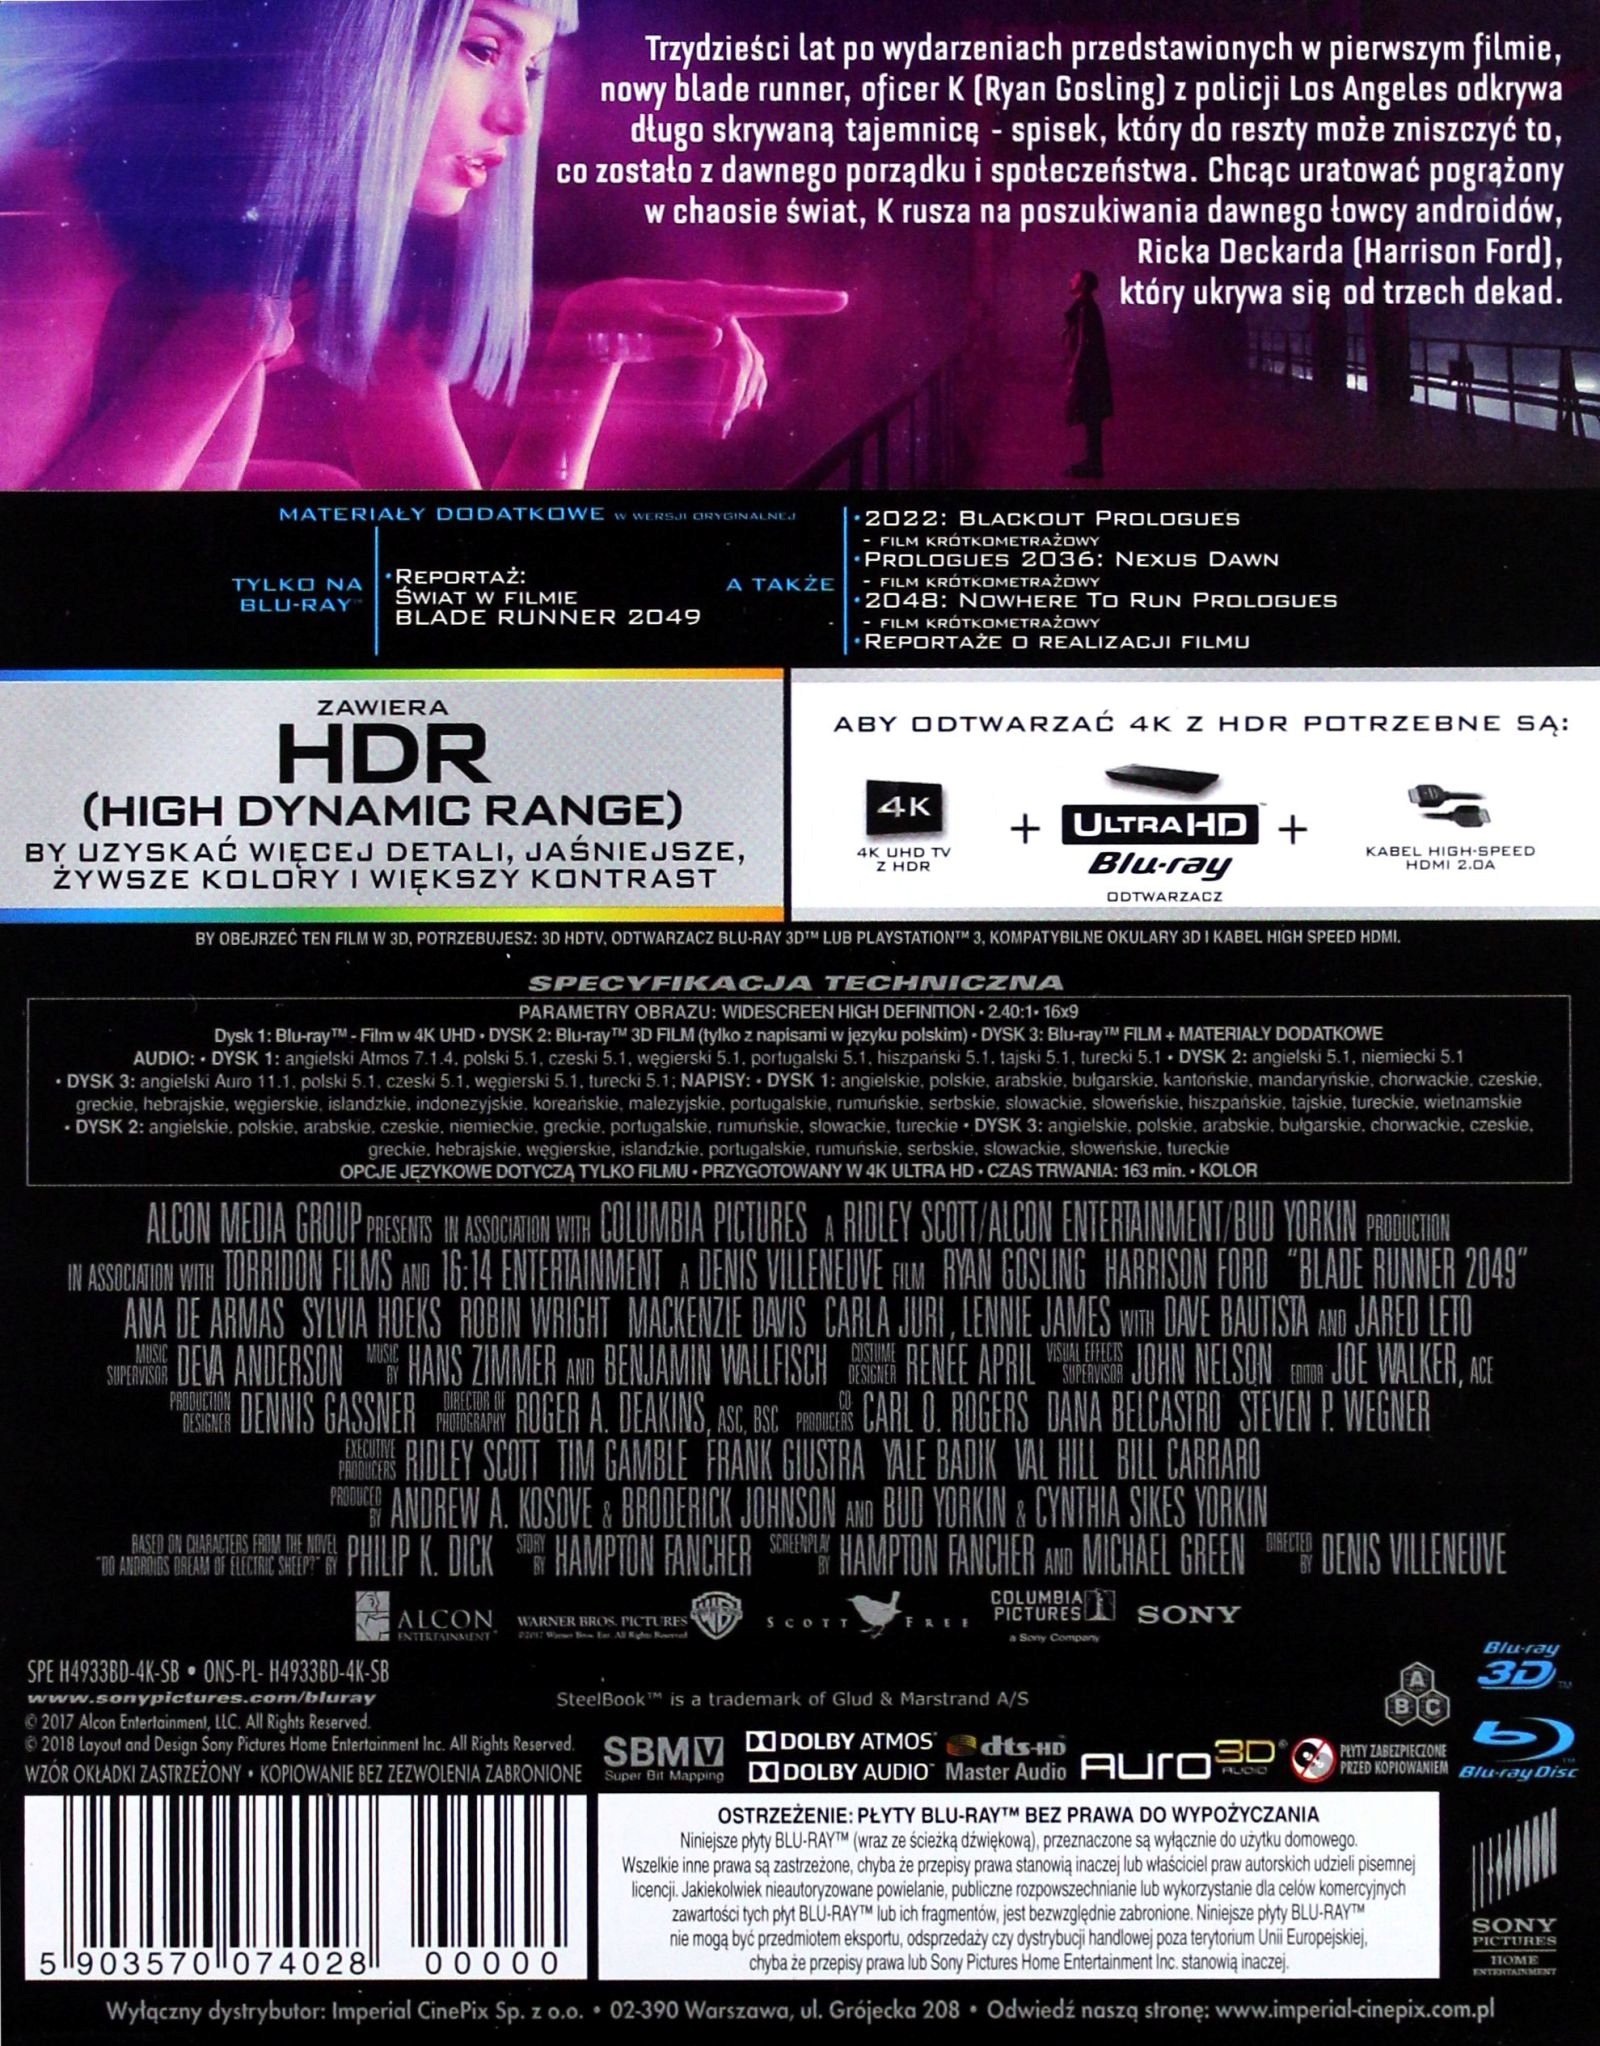 Blade Runner 2049 (2017) - Film 4K Ultra-HD